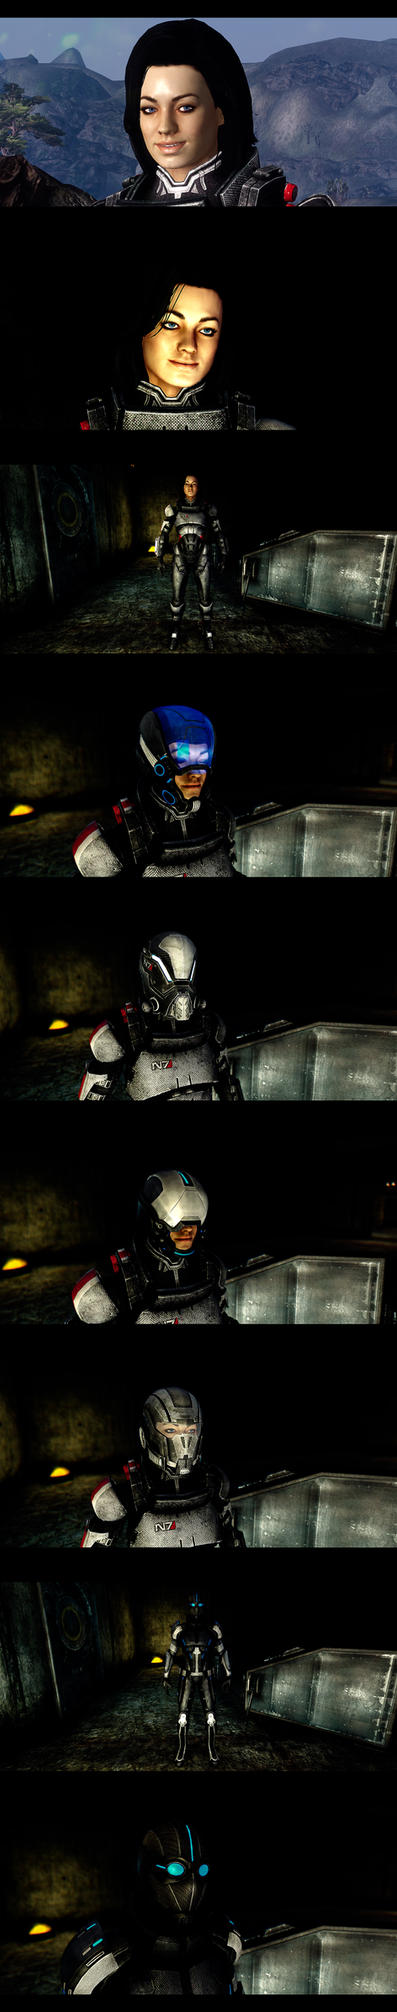 Fallout New Vegas MOD - Miranda Release V1 by lsquall